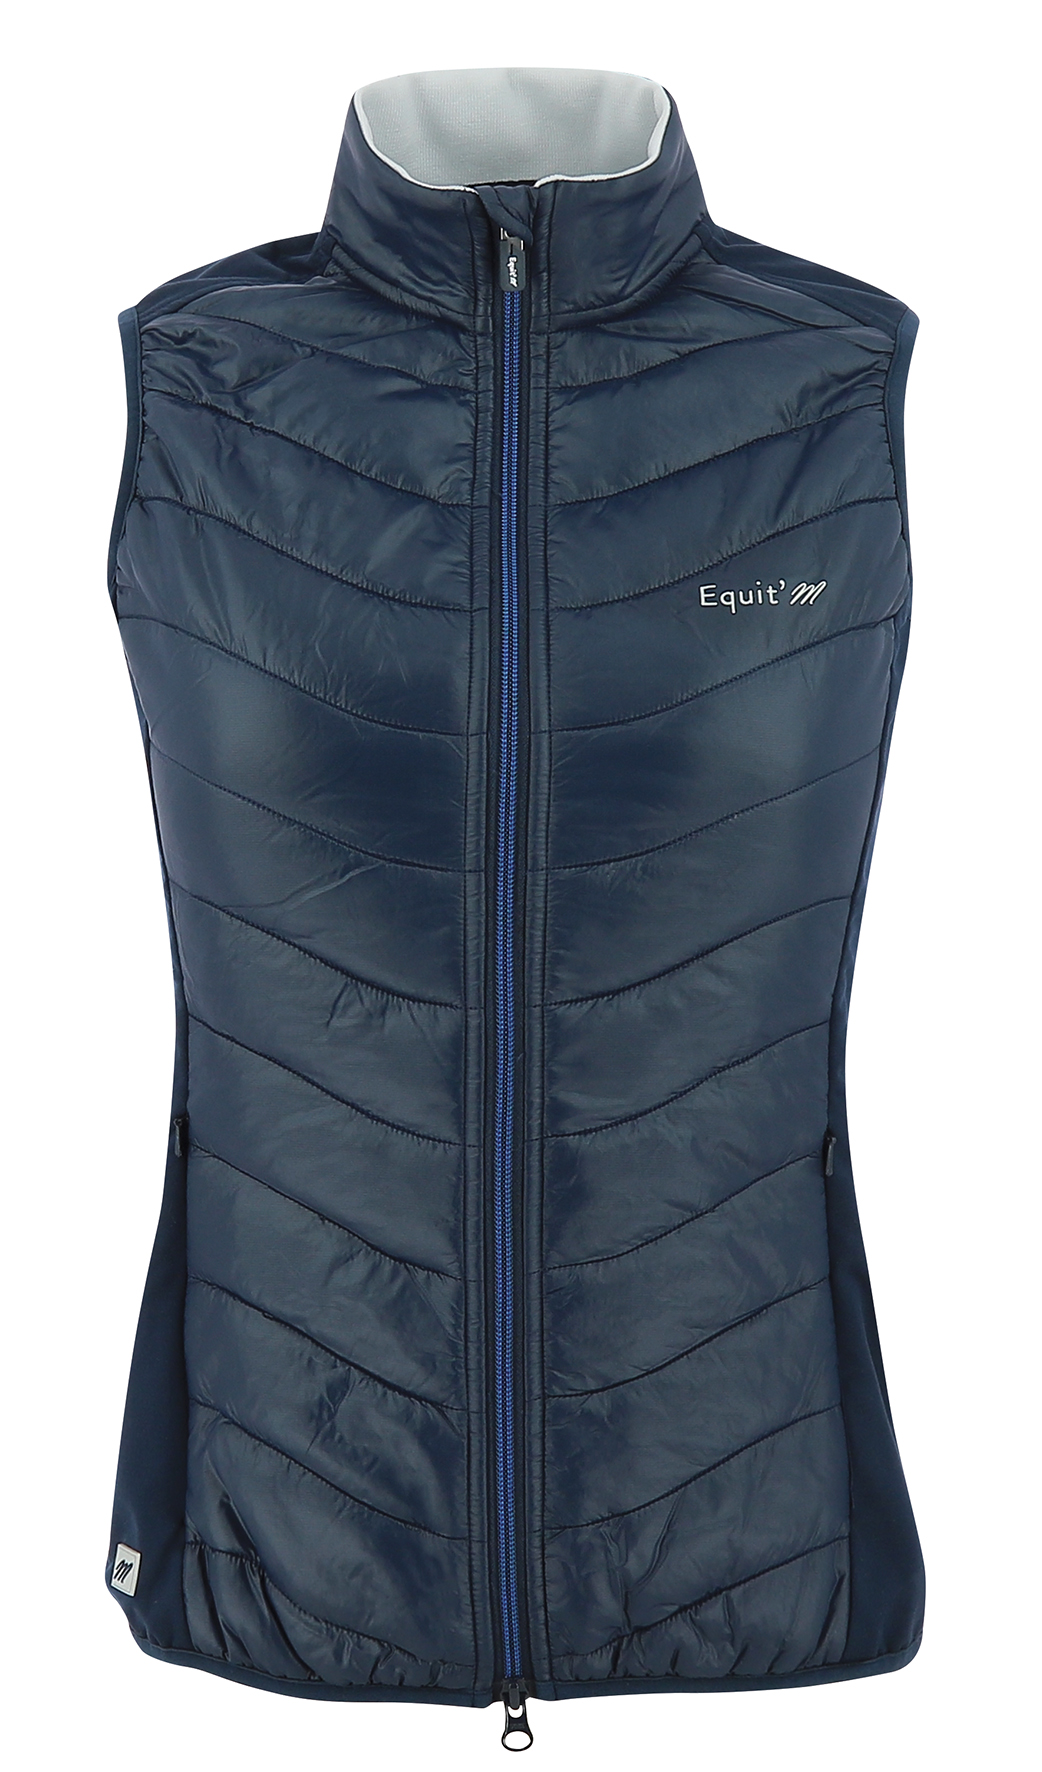 Equit'M ~ Sleeveless Padded Jacket